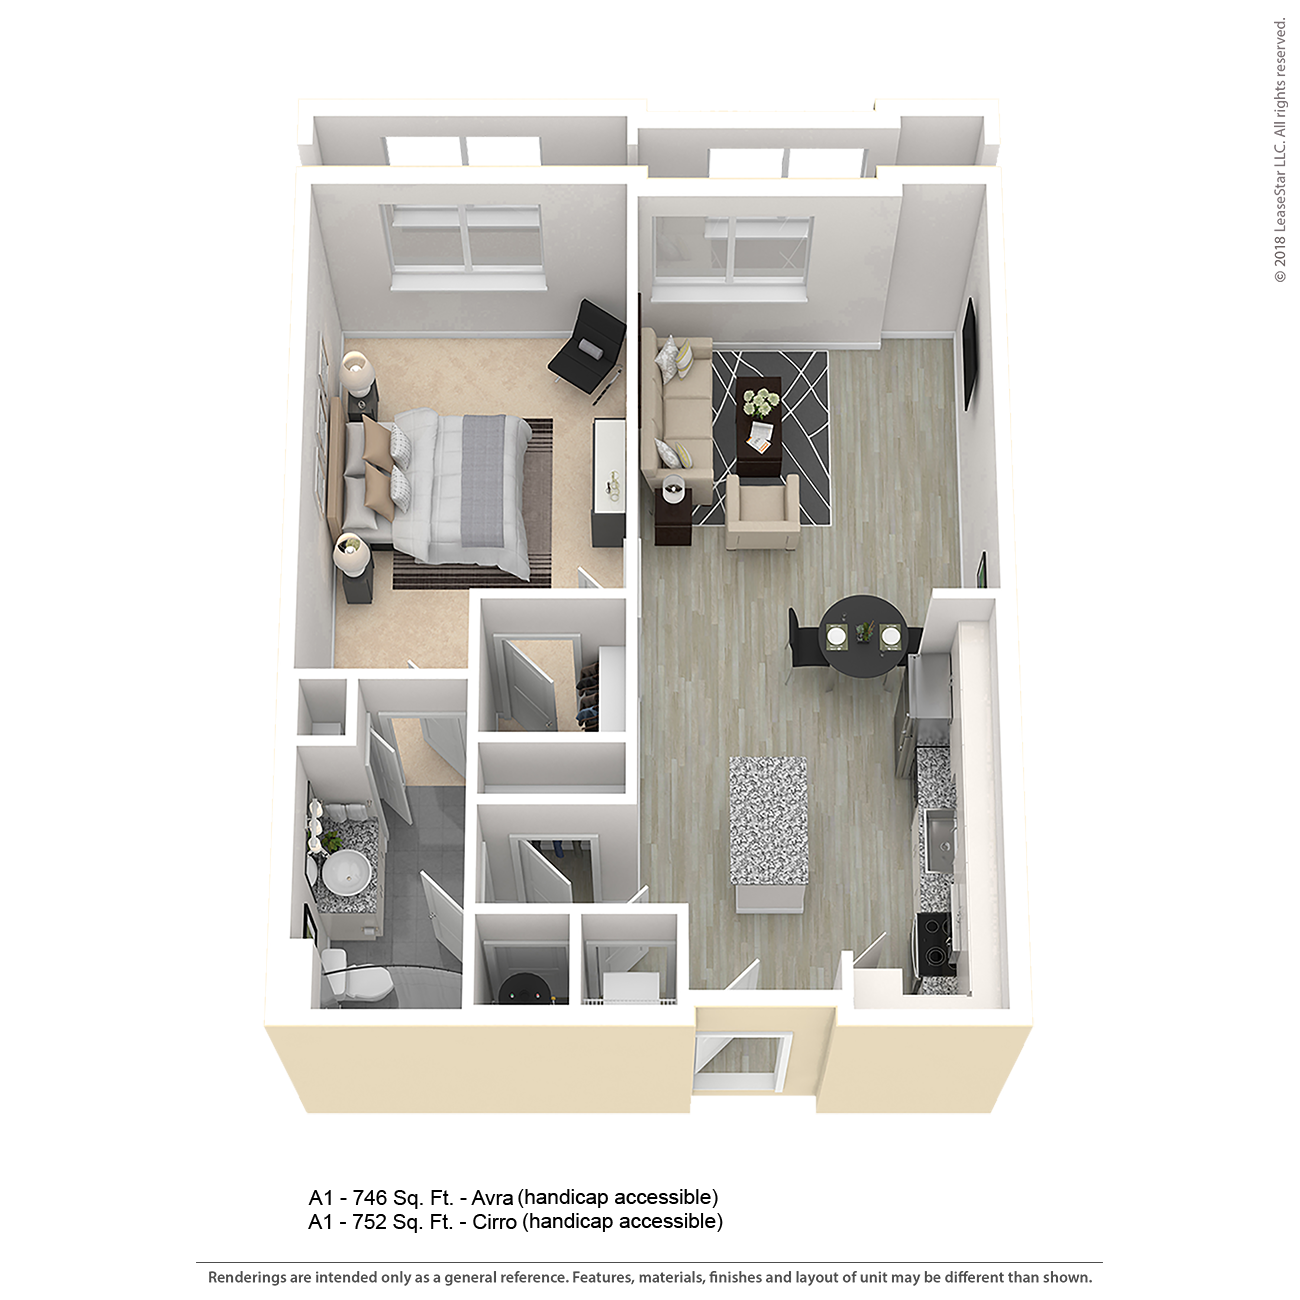 Center West Apartments Baltimore Md: A1 Apartment Floor Plan